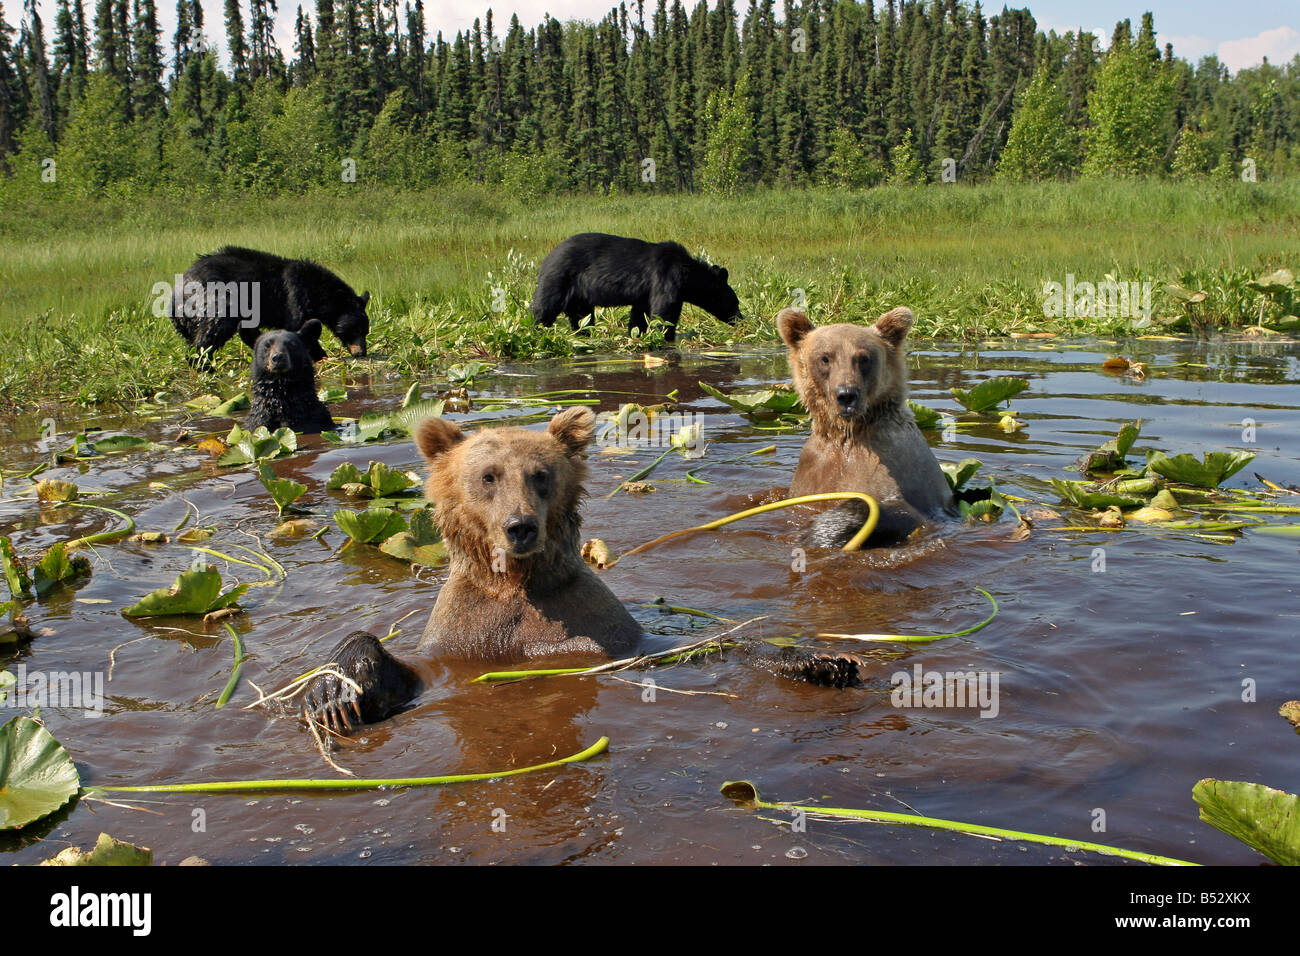 Grizzly orsi neri di cooling off insieme a lily pond centromeridionale Alaska MatSu Valley estate Immagini Stock